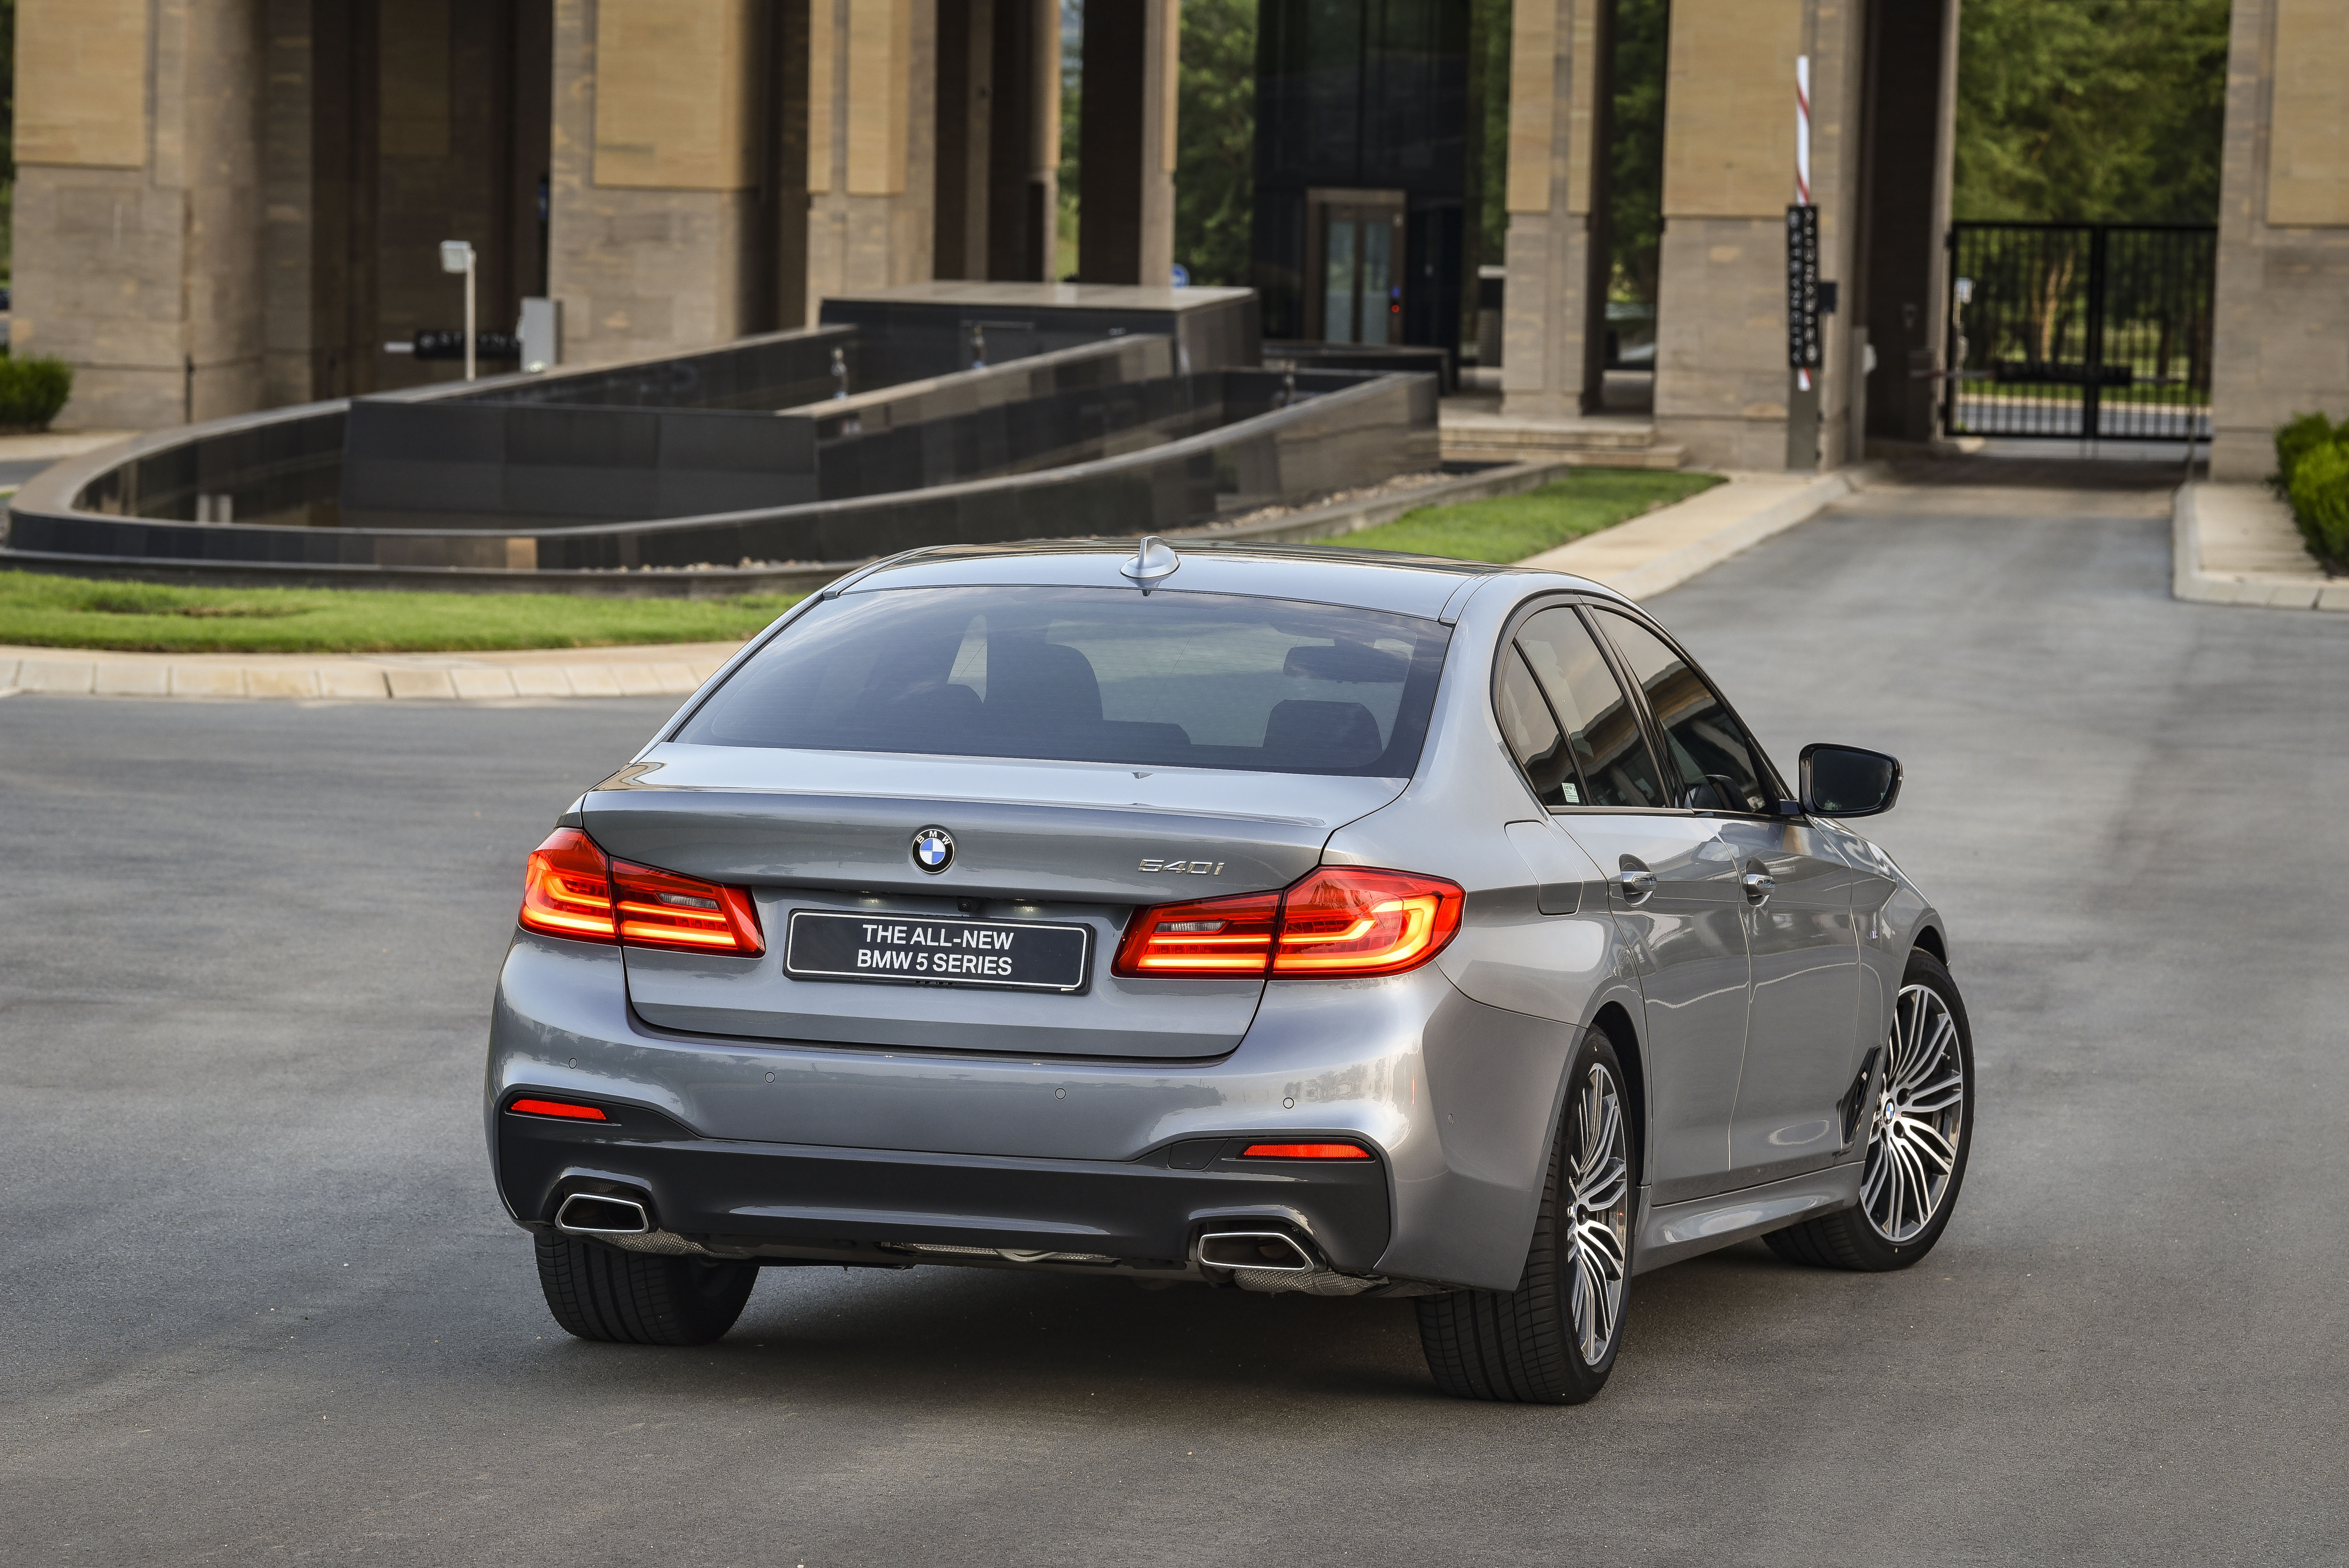 Reviewed 2017 Bmw 530i 5 Series P90249882 Highres The All New Se